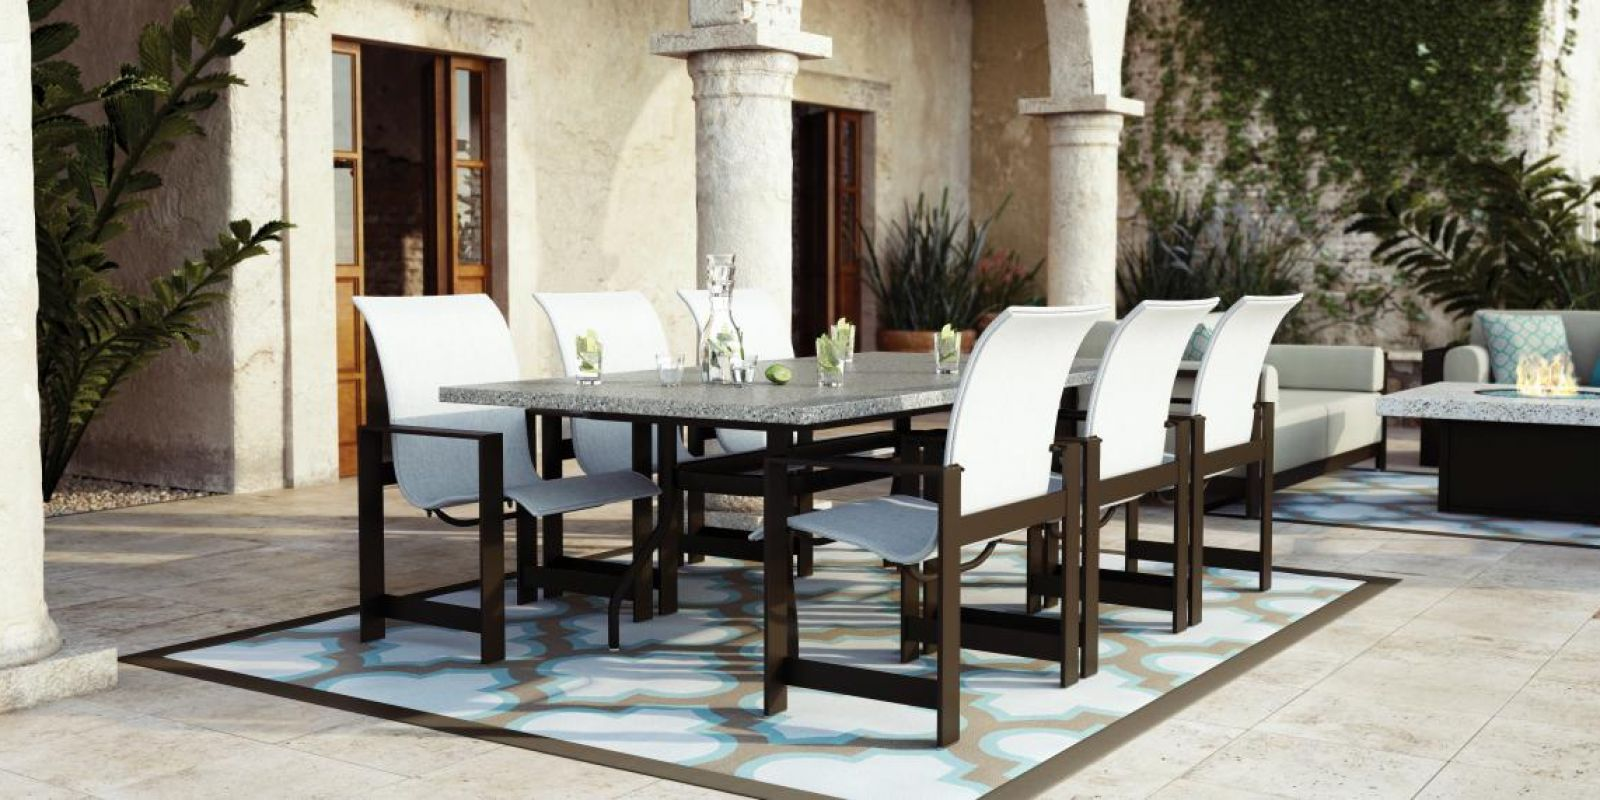 Outdoor Patio Design Specialist | American Casual Living on Porch & Patio Casual Living id=20273